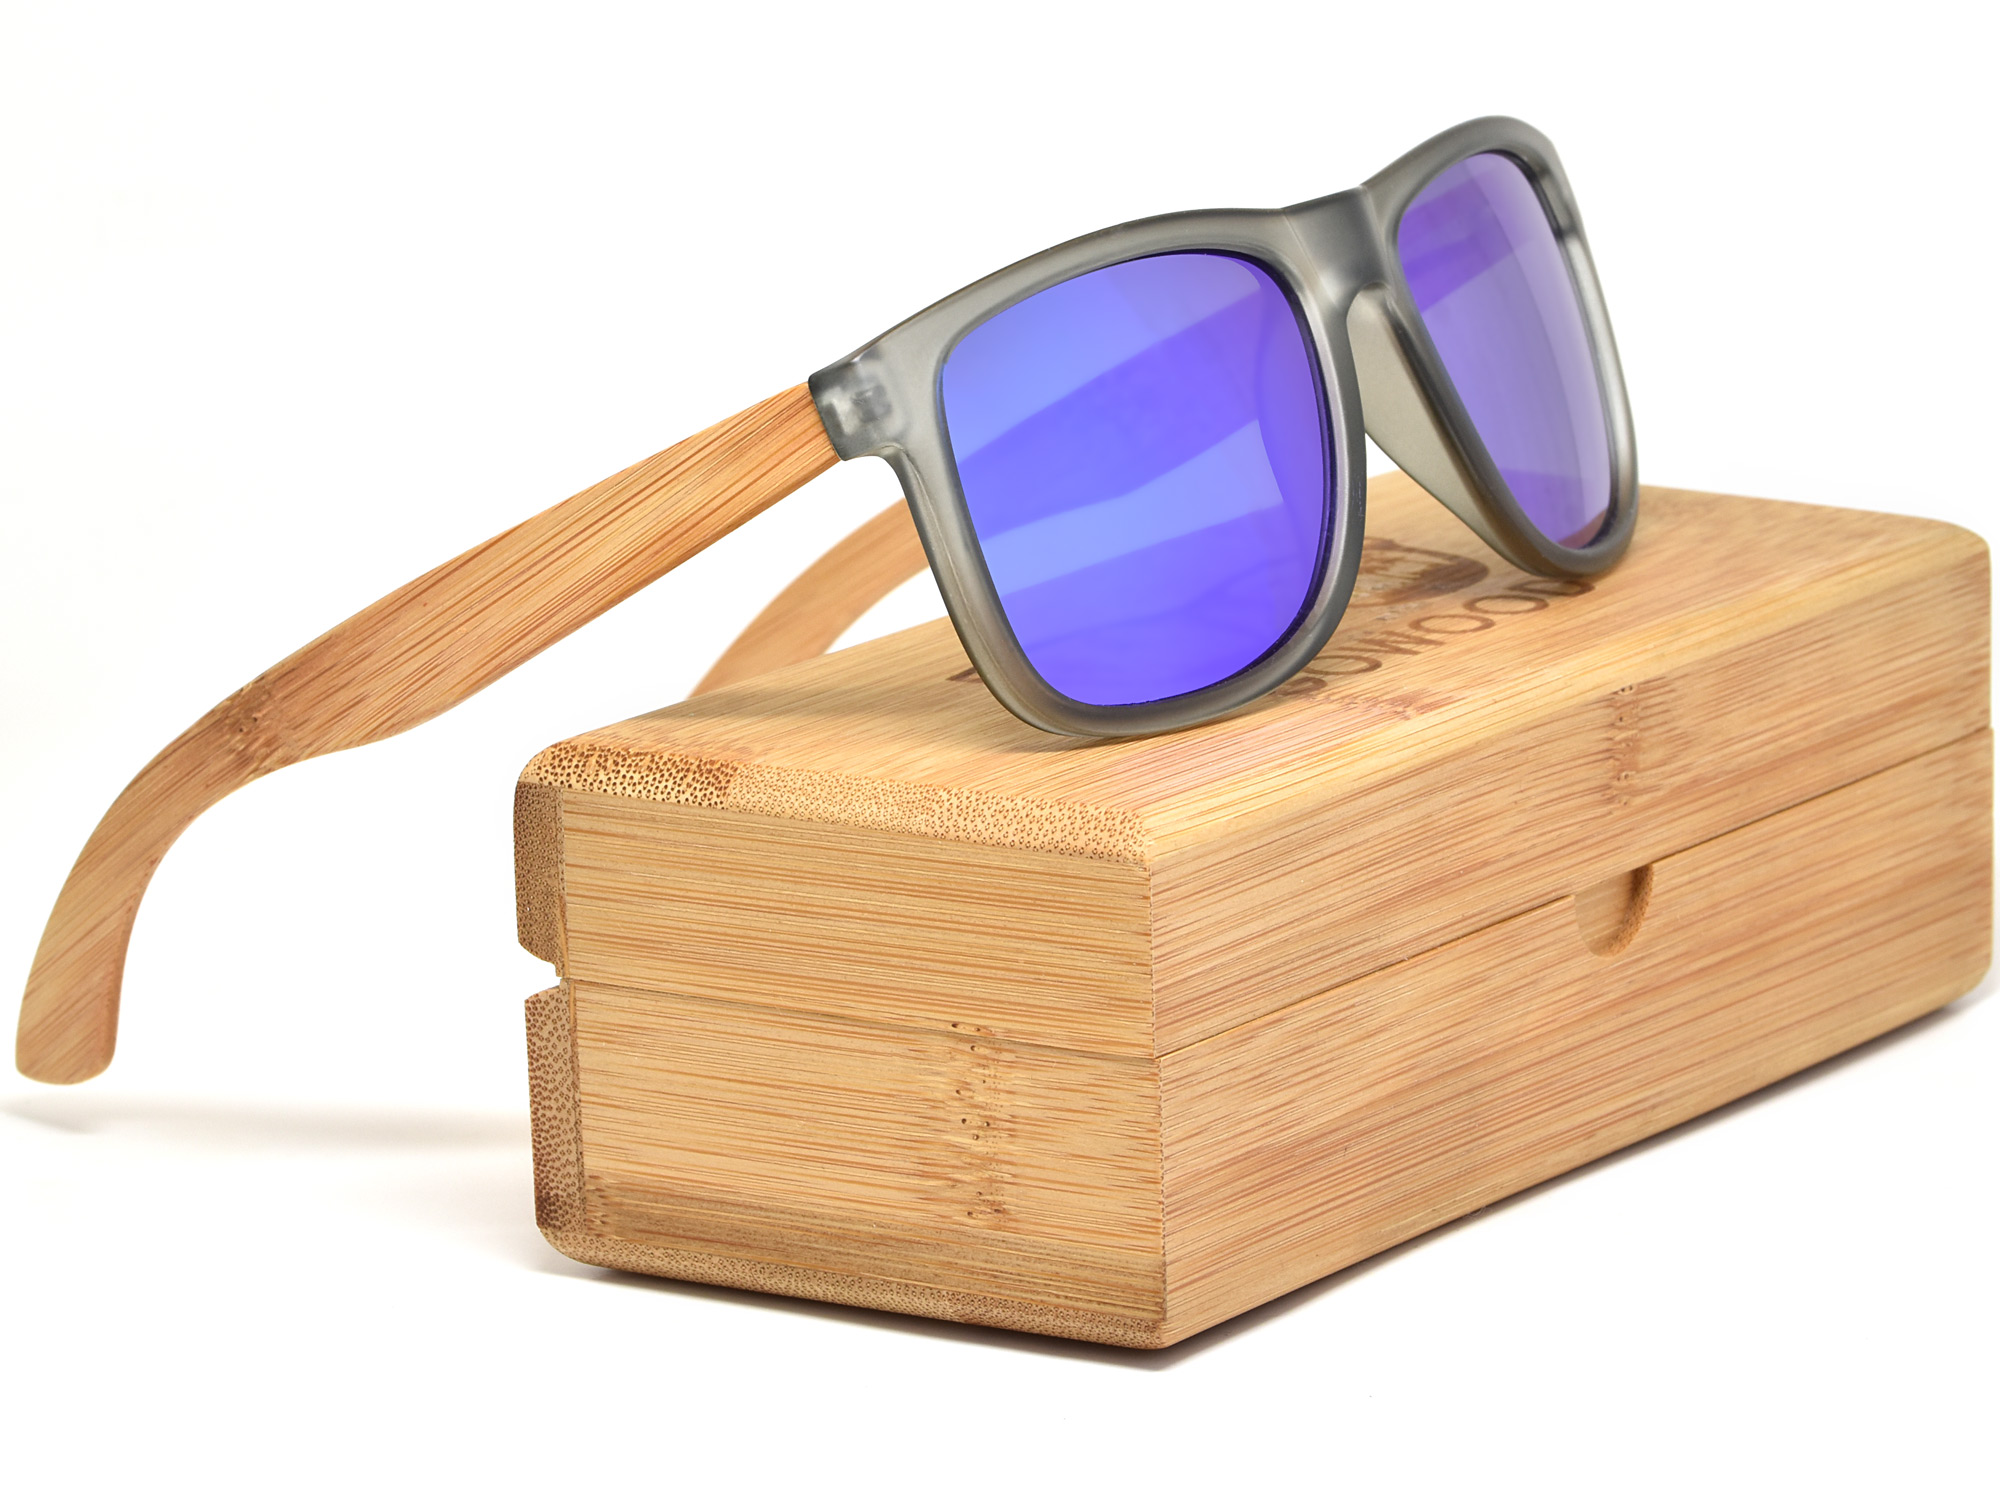 Square bamboo wood sunglasses with blue mirrored polarized lenses set